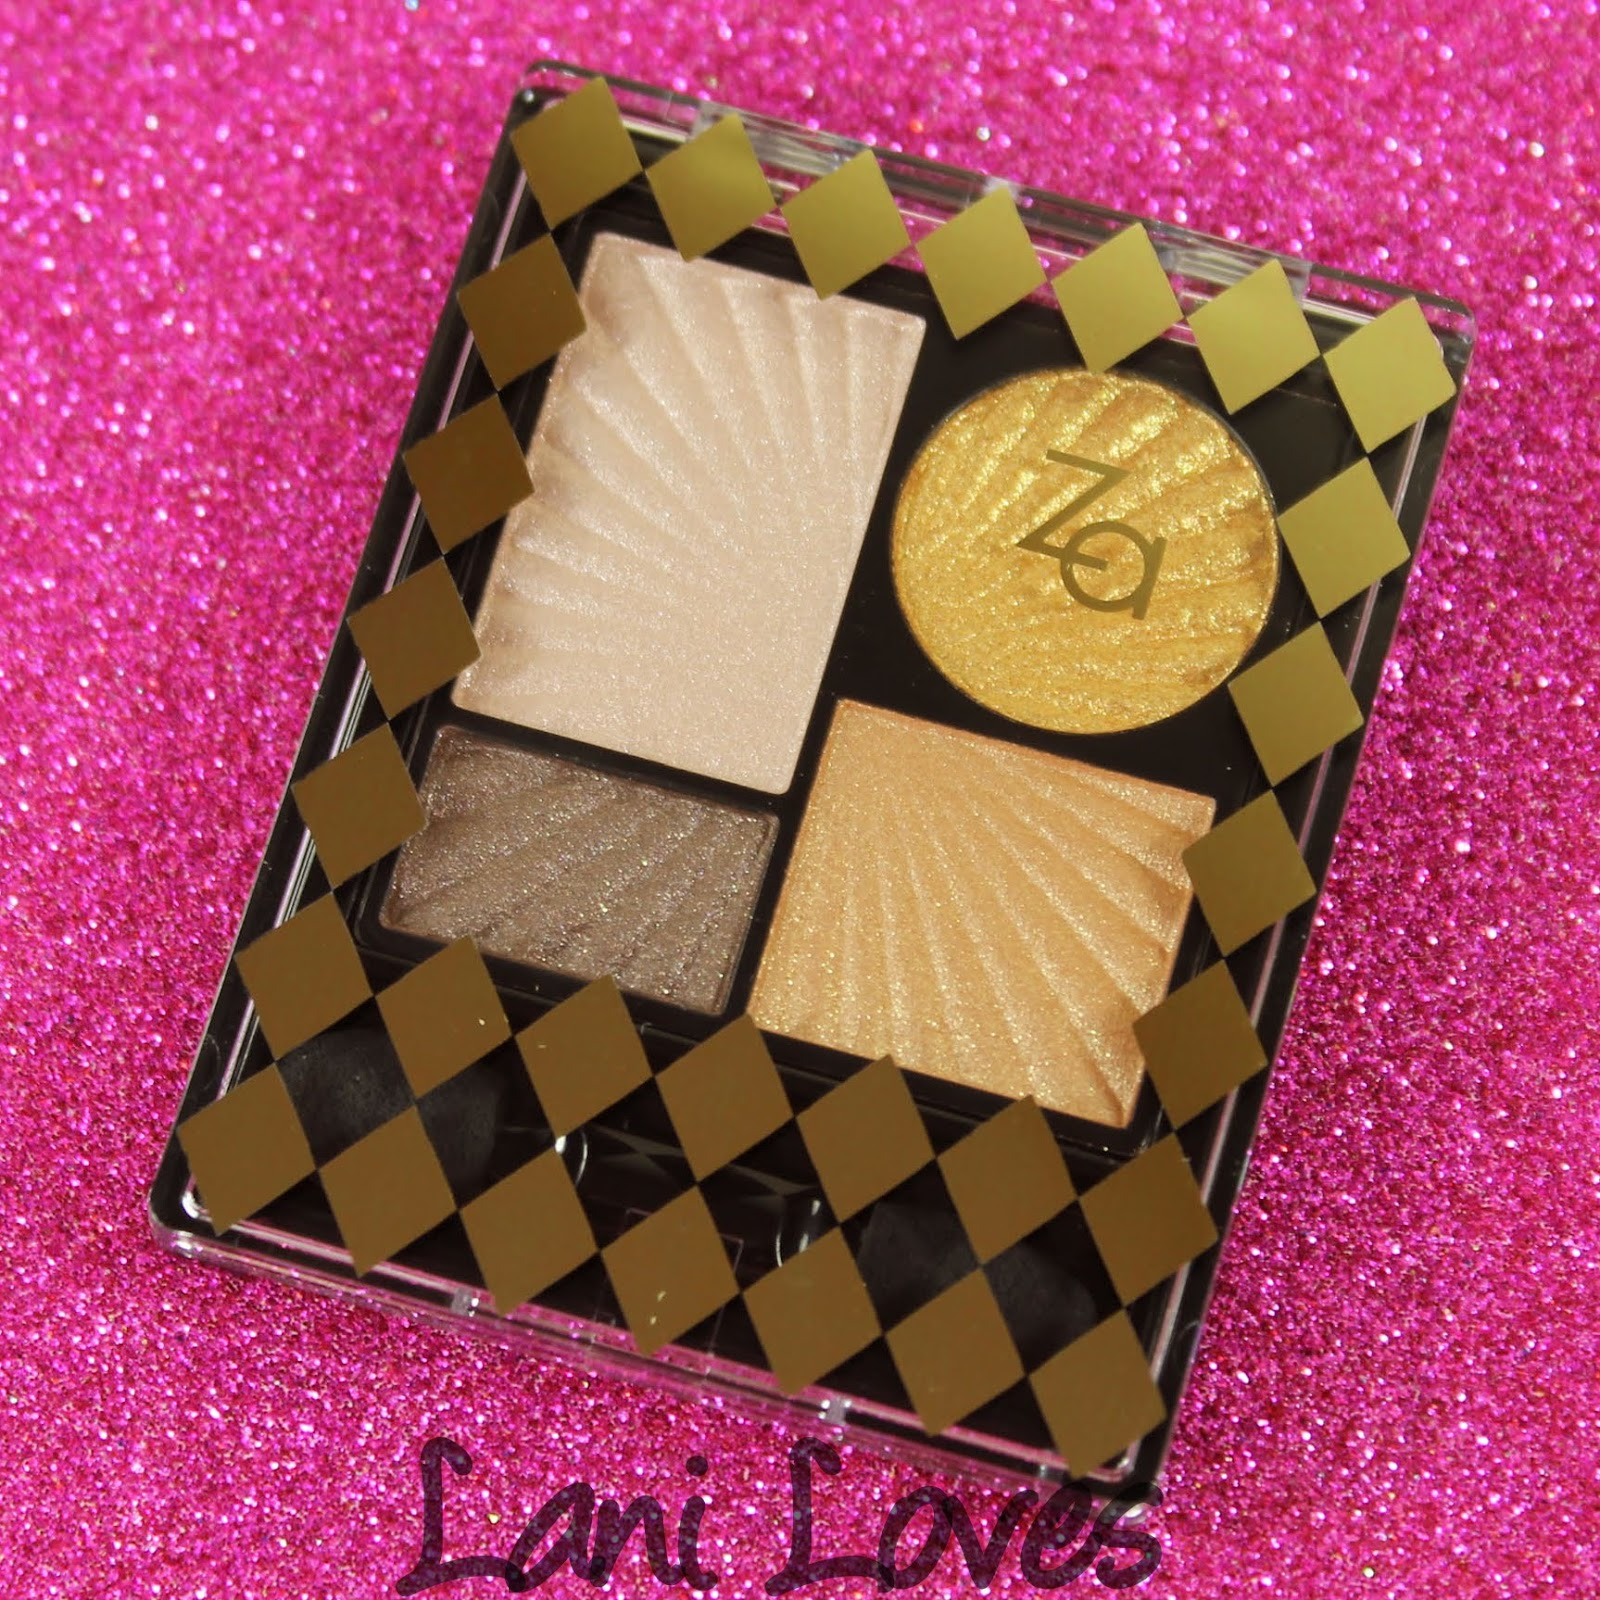 ZA Impact-Full Eyes Groovy Limited Edition Pure Gold Eyeshadow Palette Swatches & Review